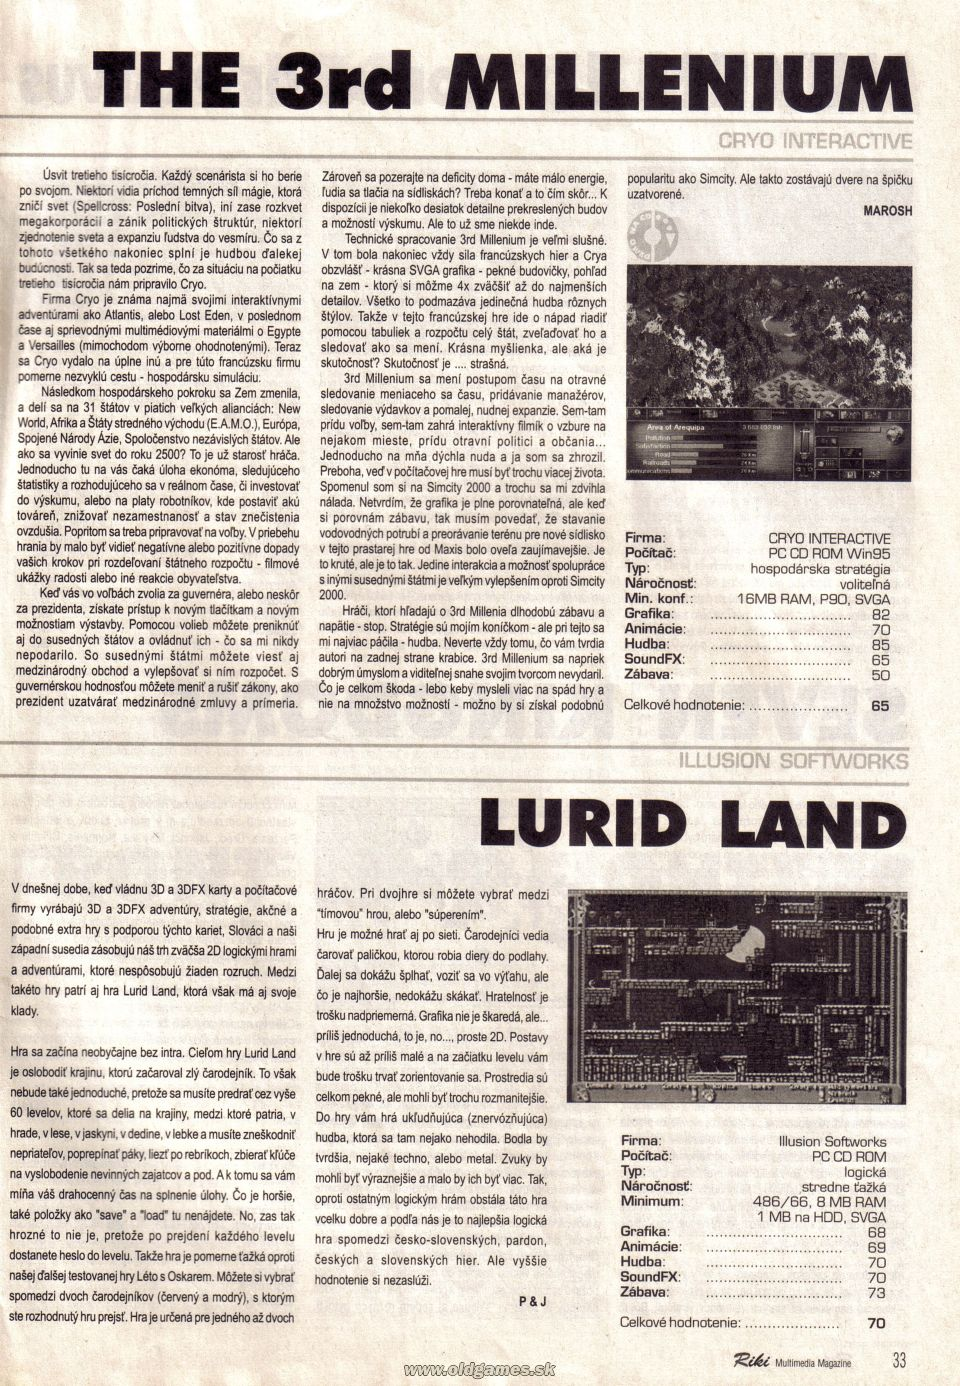 The 3rd Millenium, Lurid Land